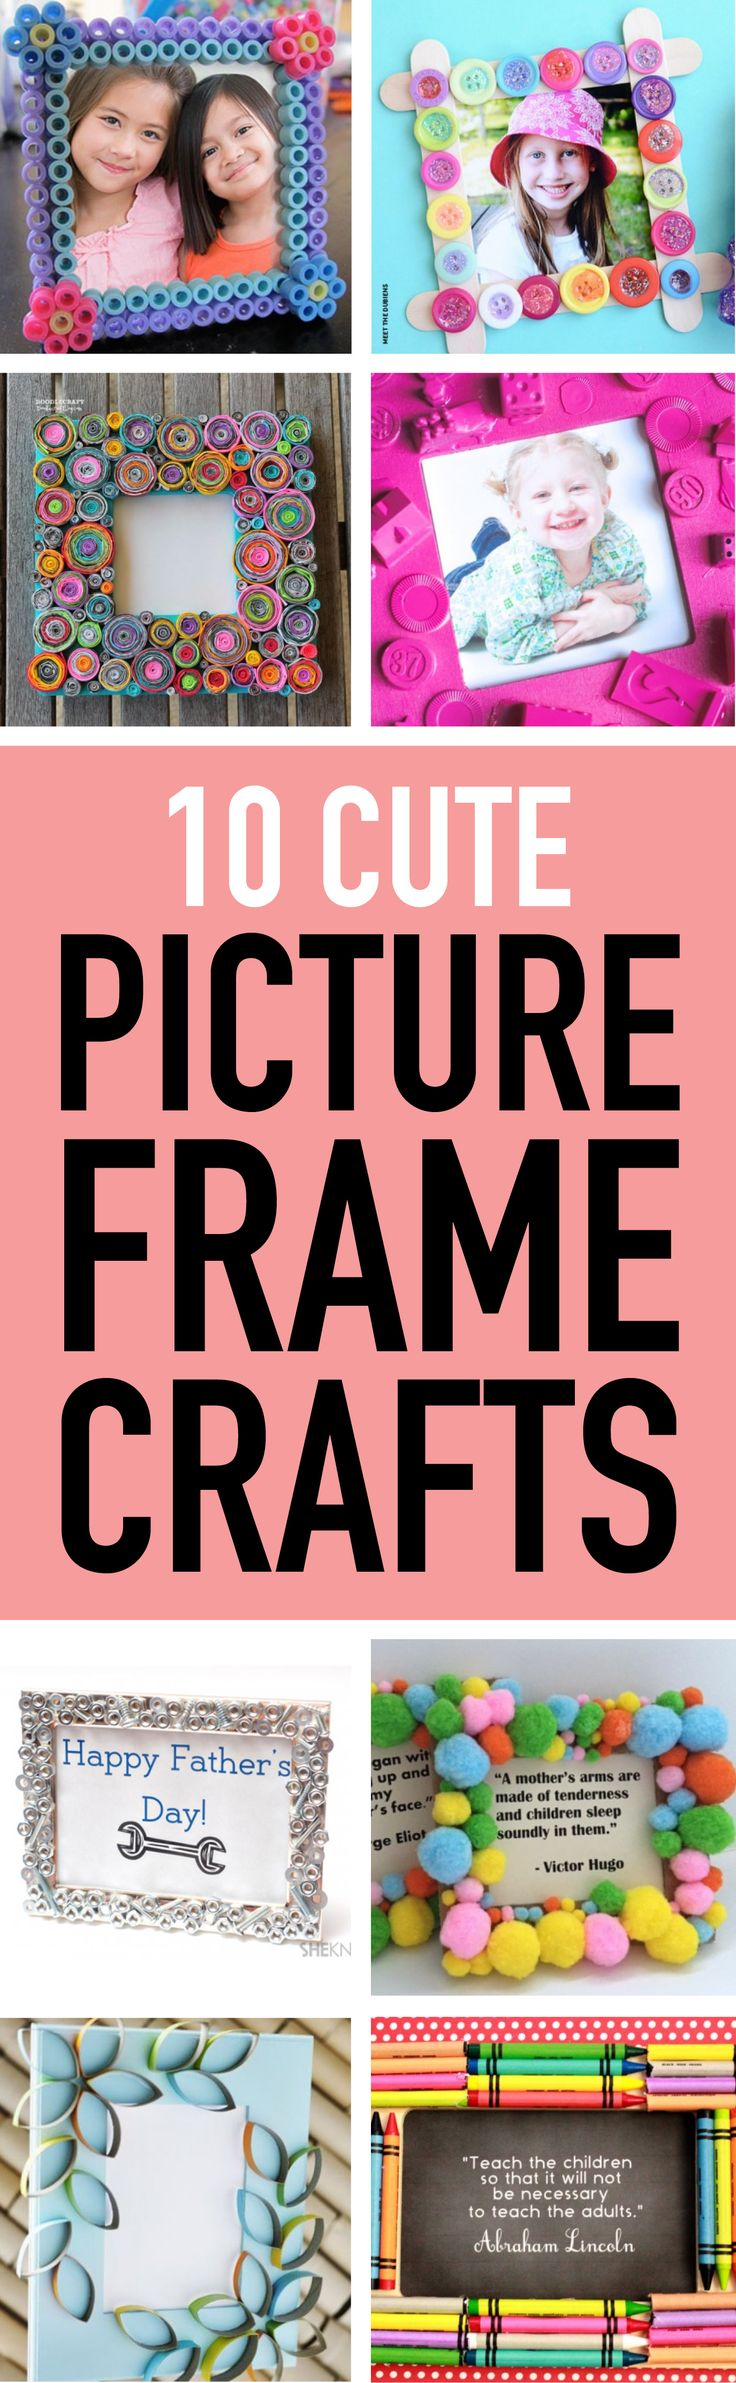 Looking for a way to entertain the kids? Make one of these fun picture frames! #kidscrafts #crafts #campcrafts